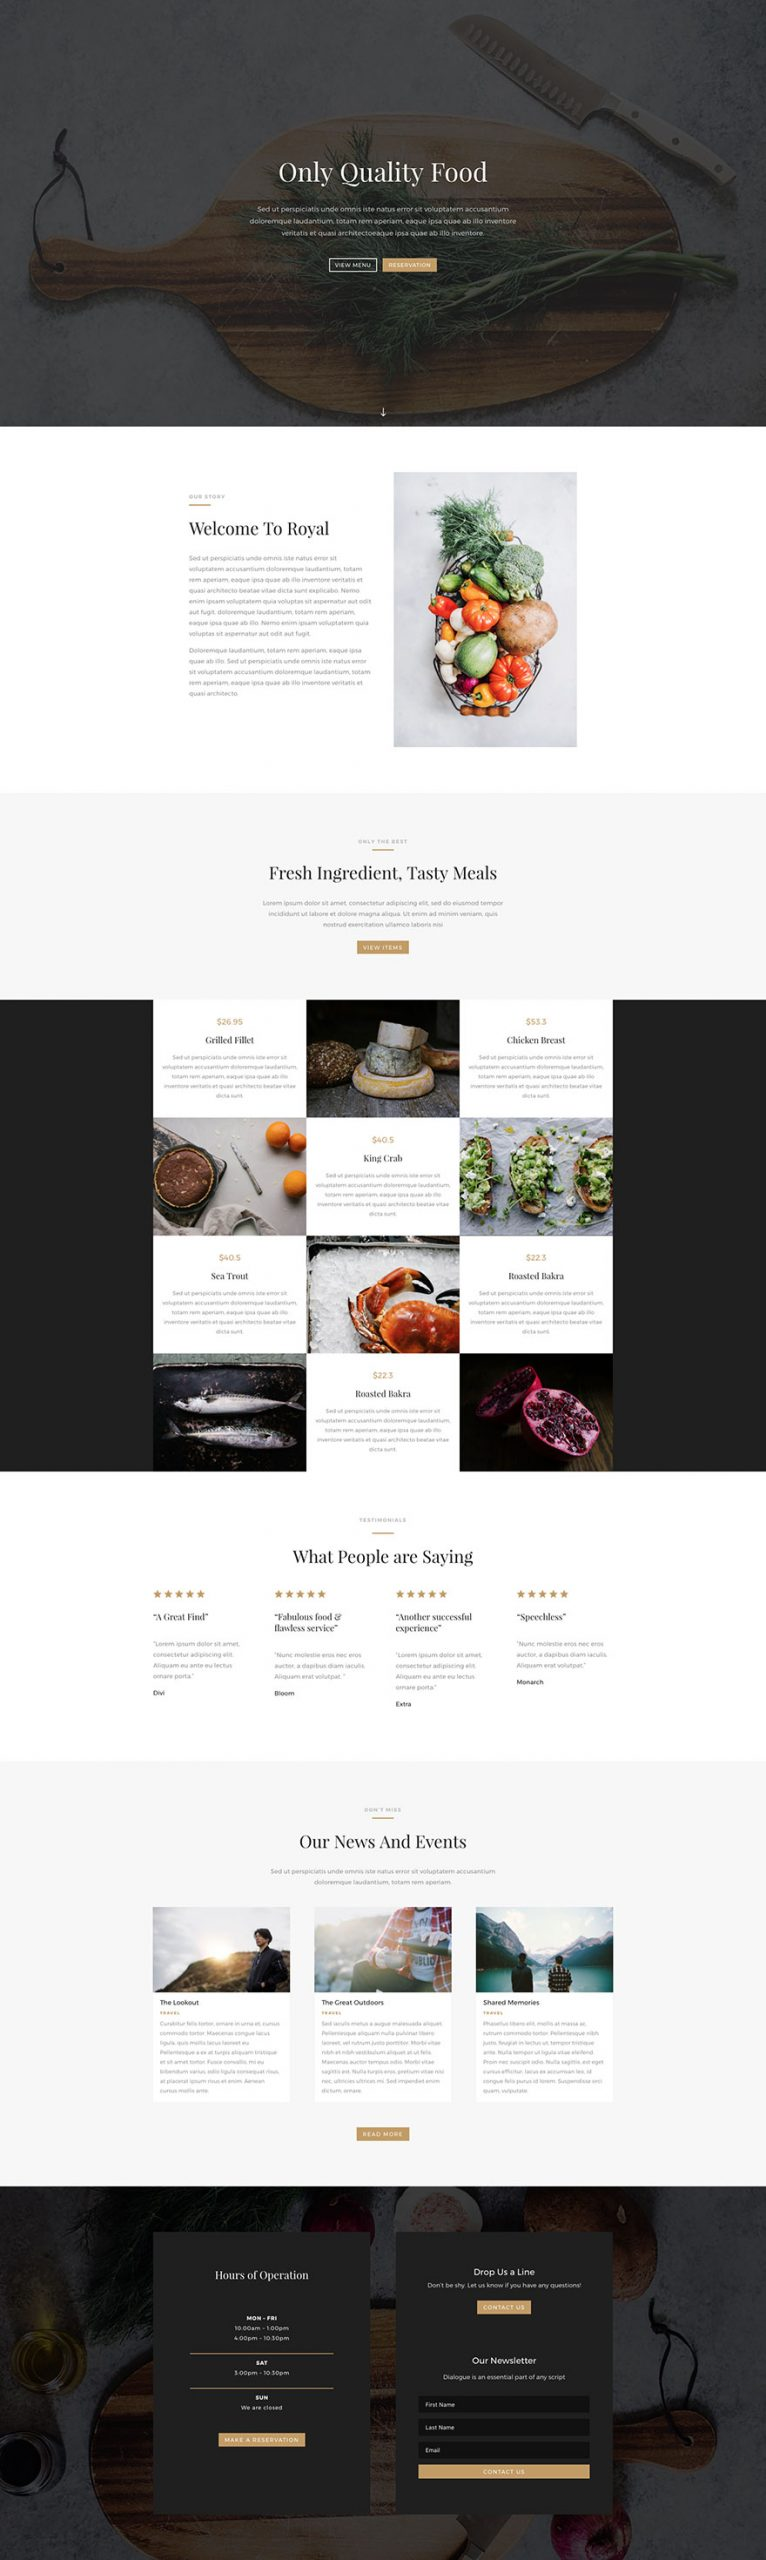 Restaurant Website Using WordPress